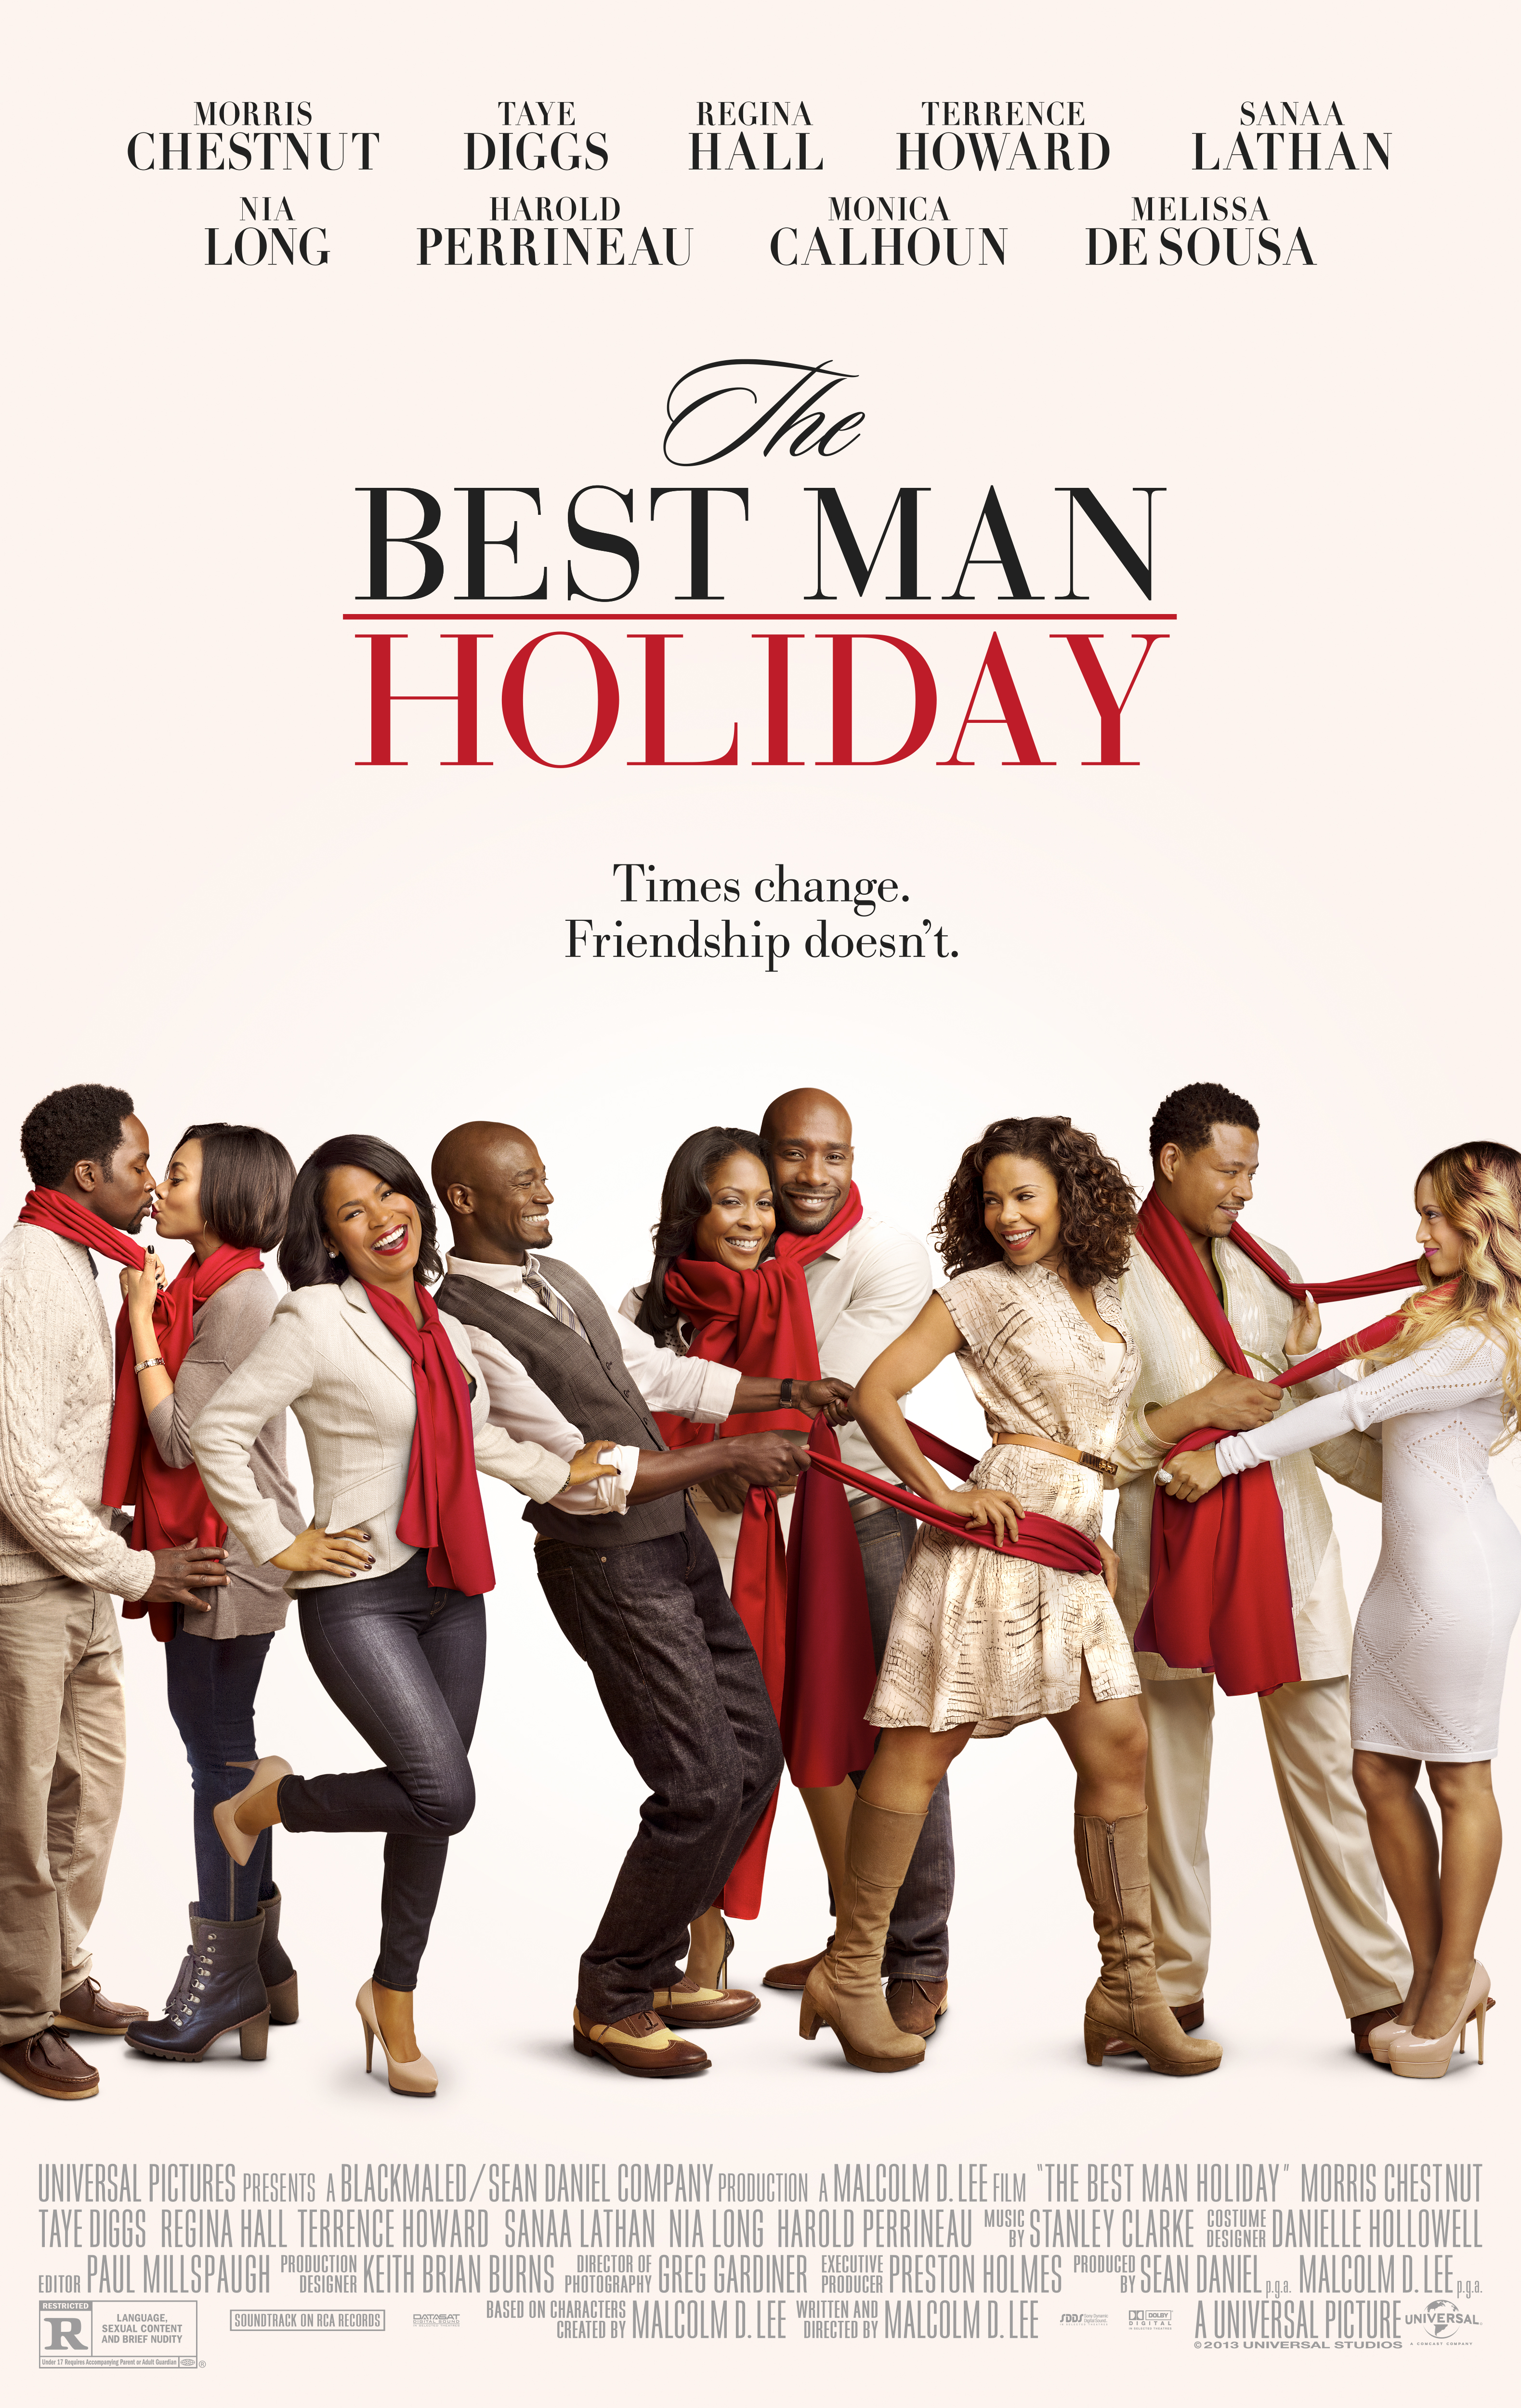 THE BEST MAN HOLIDAY (R)